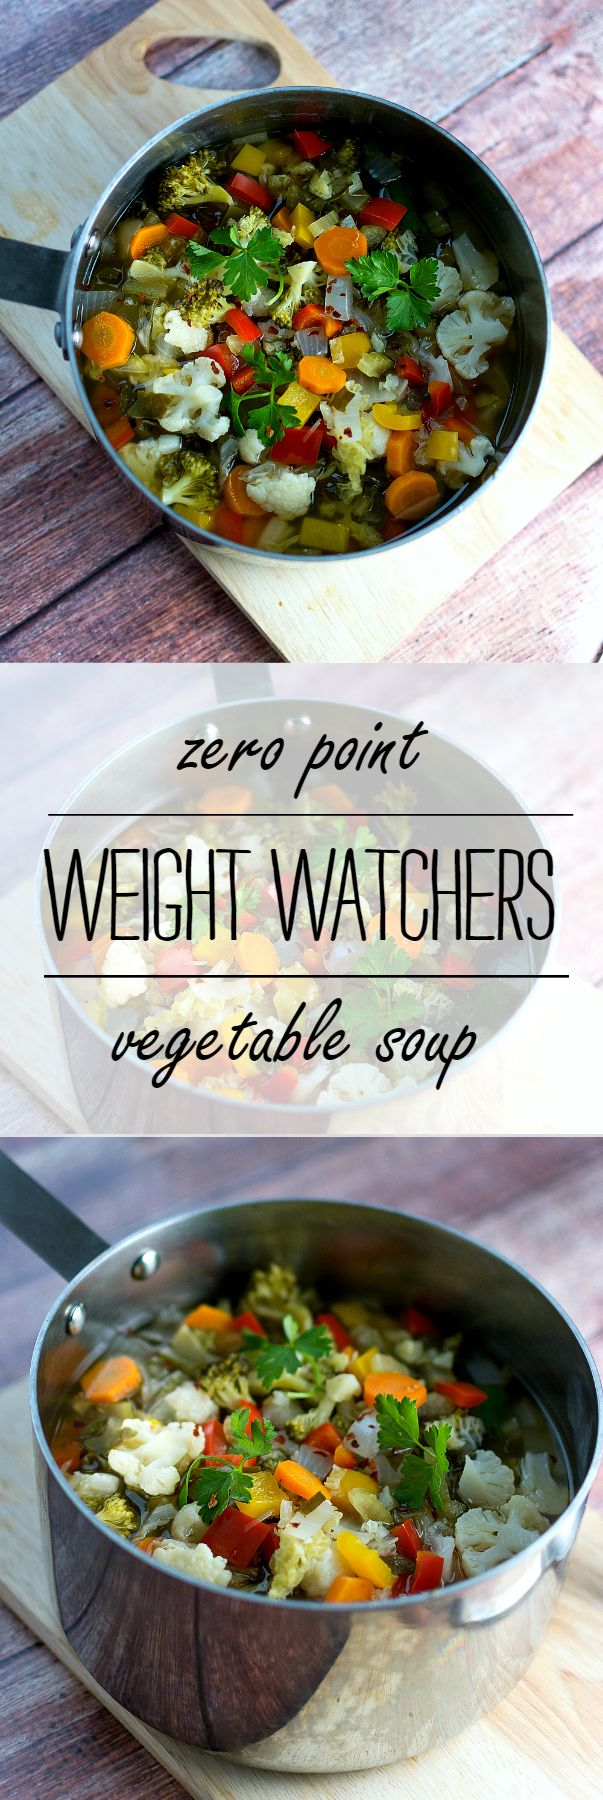 Weight Watchers Soup Recipe – Zero Point Recipe Ideas for Weight Watchers Lunch & Dinner – It All Started